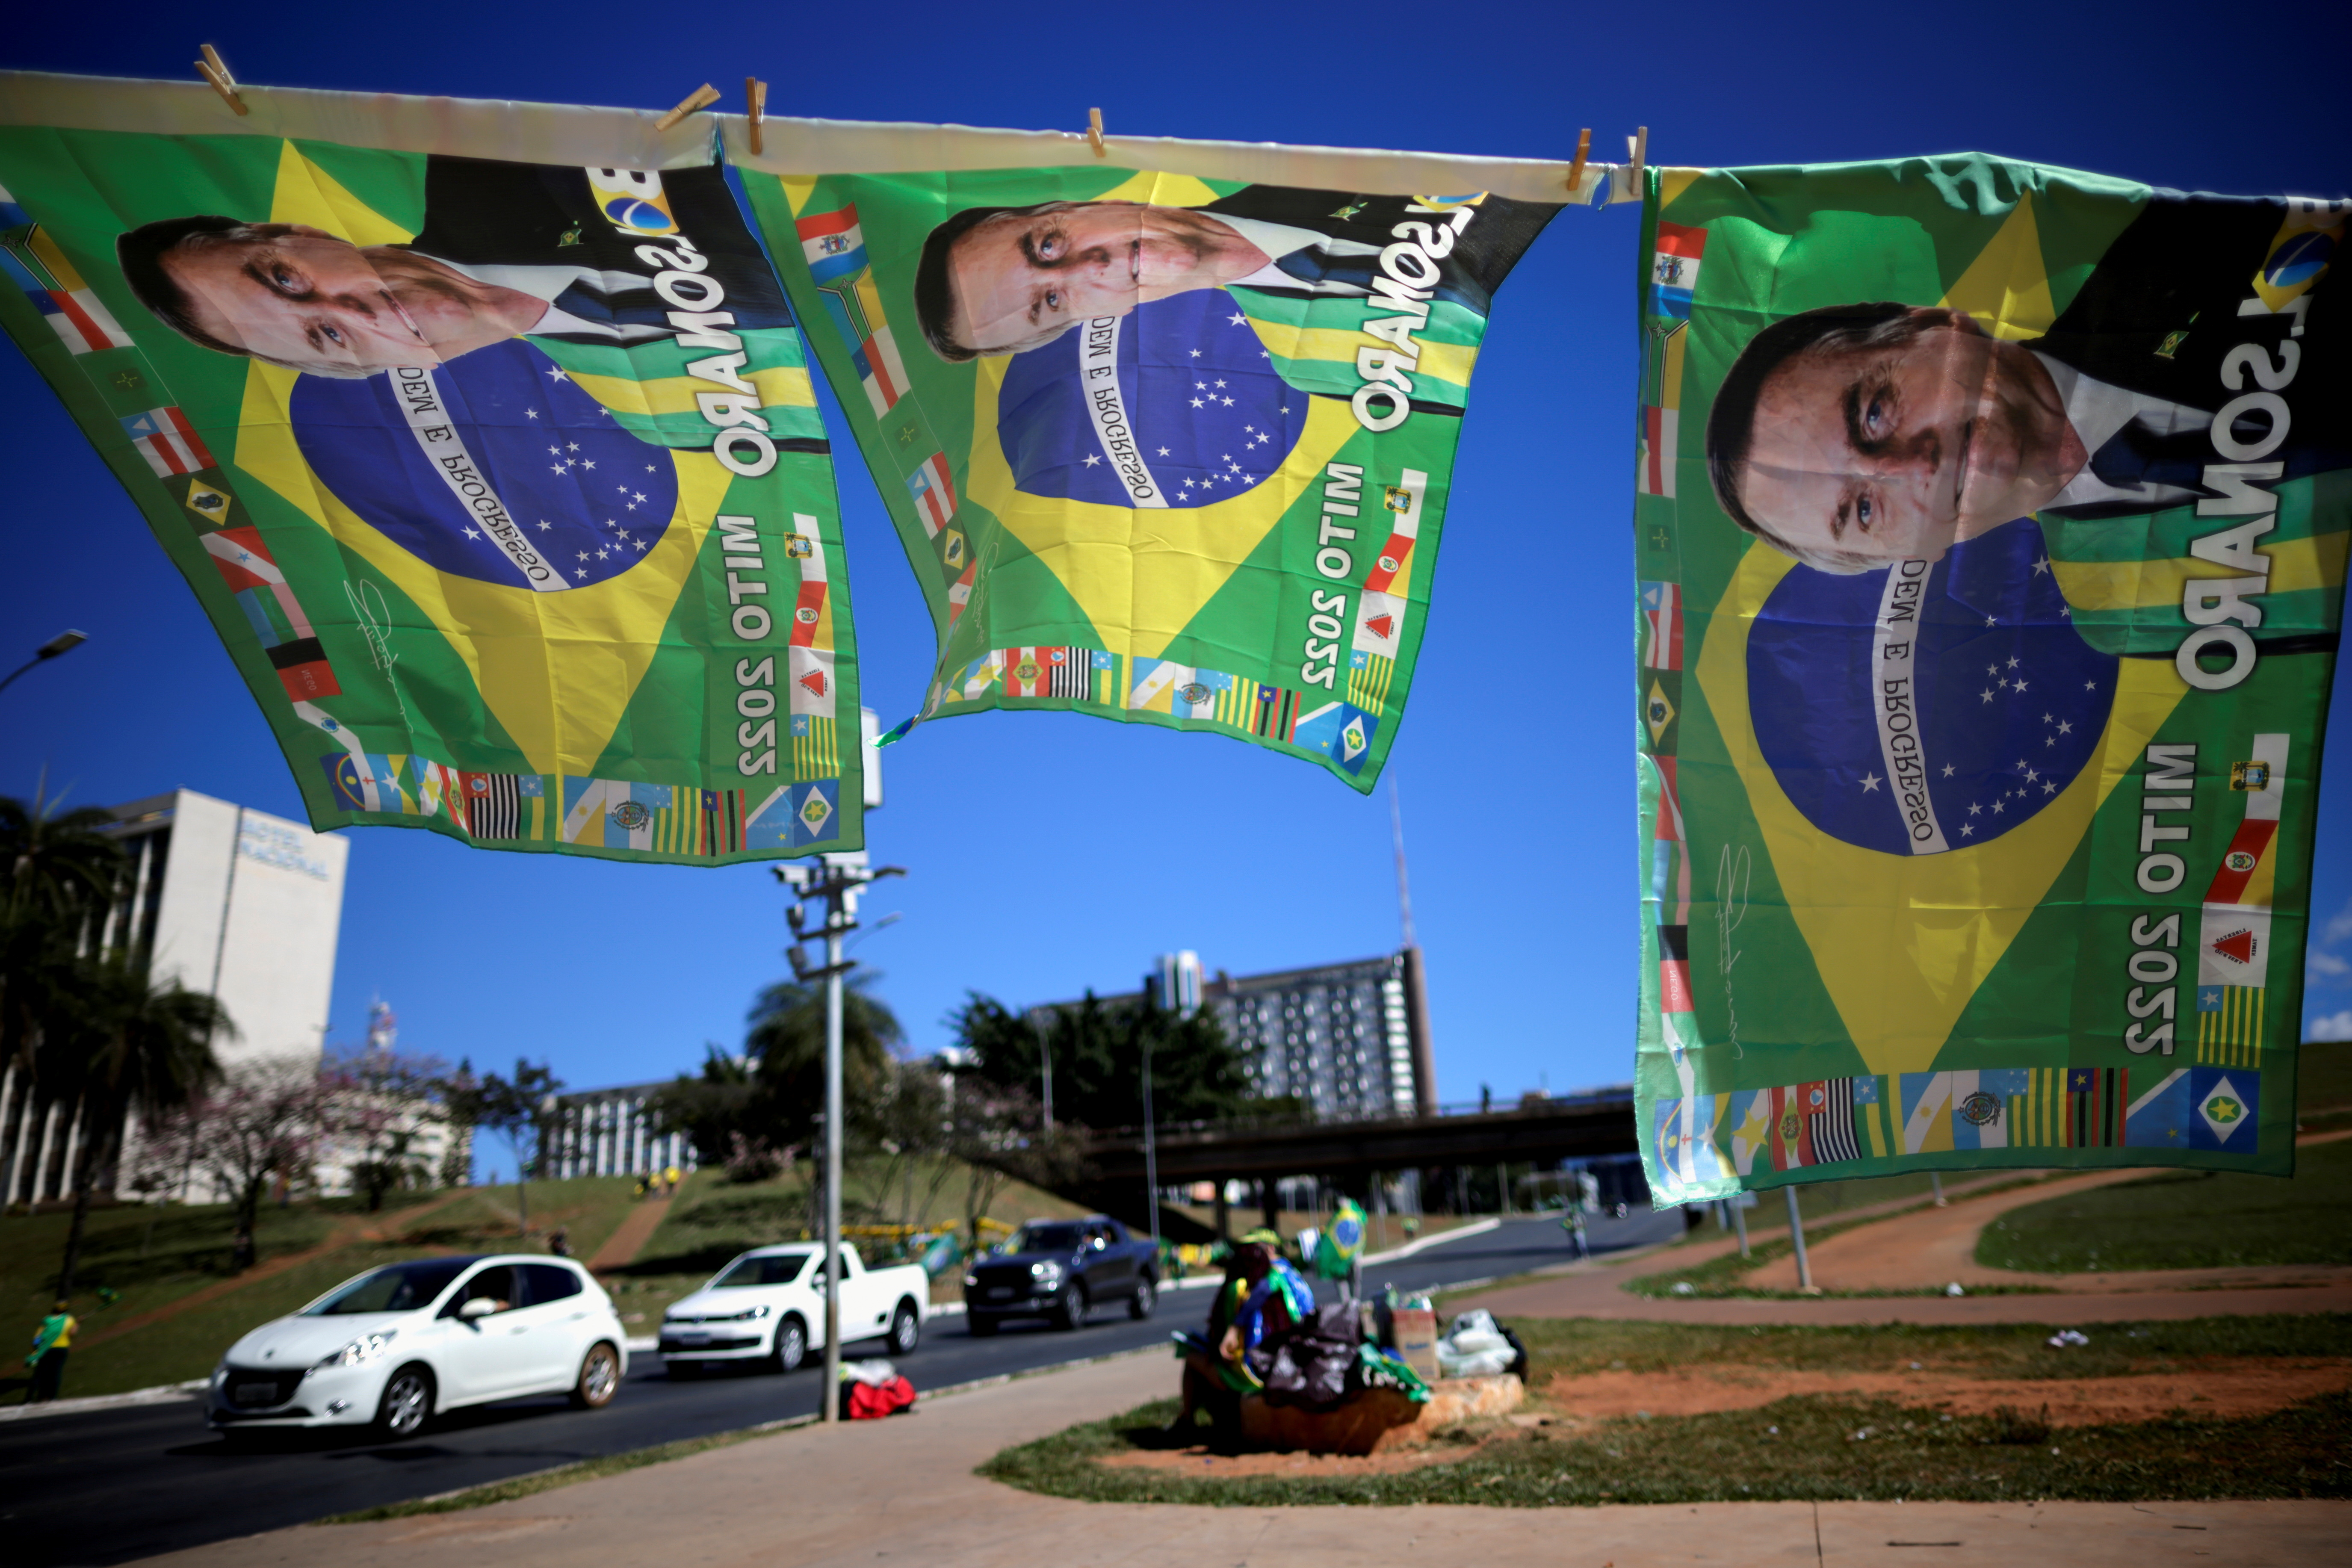 Flags with the image of Brazil's President Jair Bolsonaro are seen displayed for sale during a protest in support of him, amid the coronavirus disease (COVID-19) pandemic, in Brasilia, Brazil, June 27, 2021. REUTERS/Ueslei Marcelino/File Photo